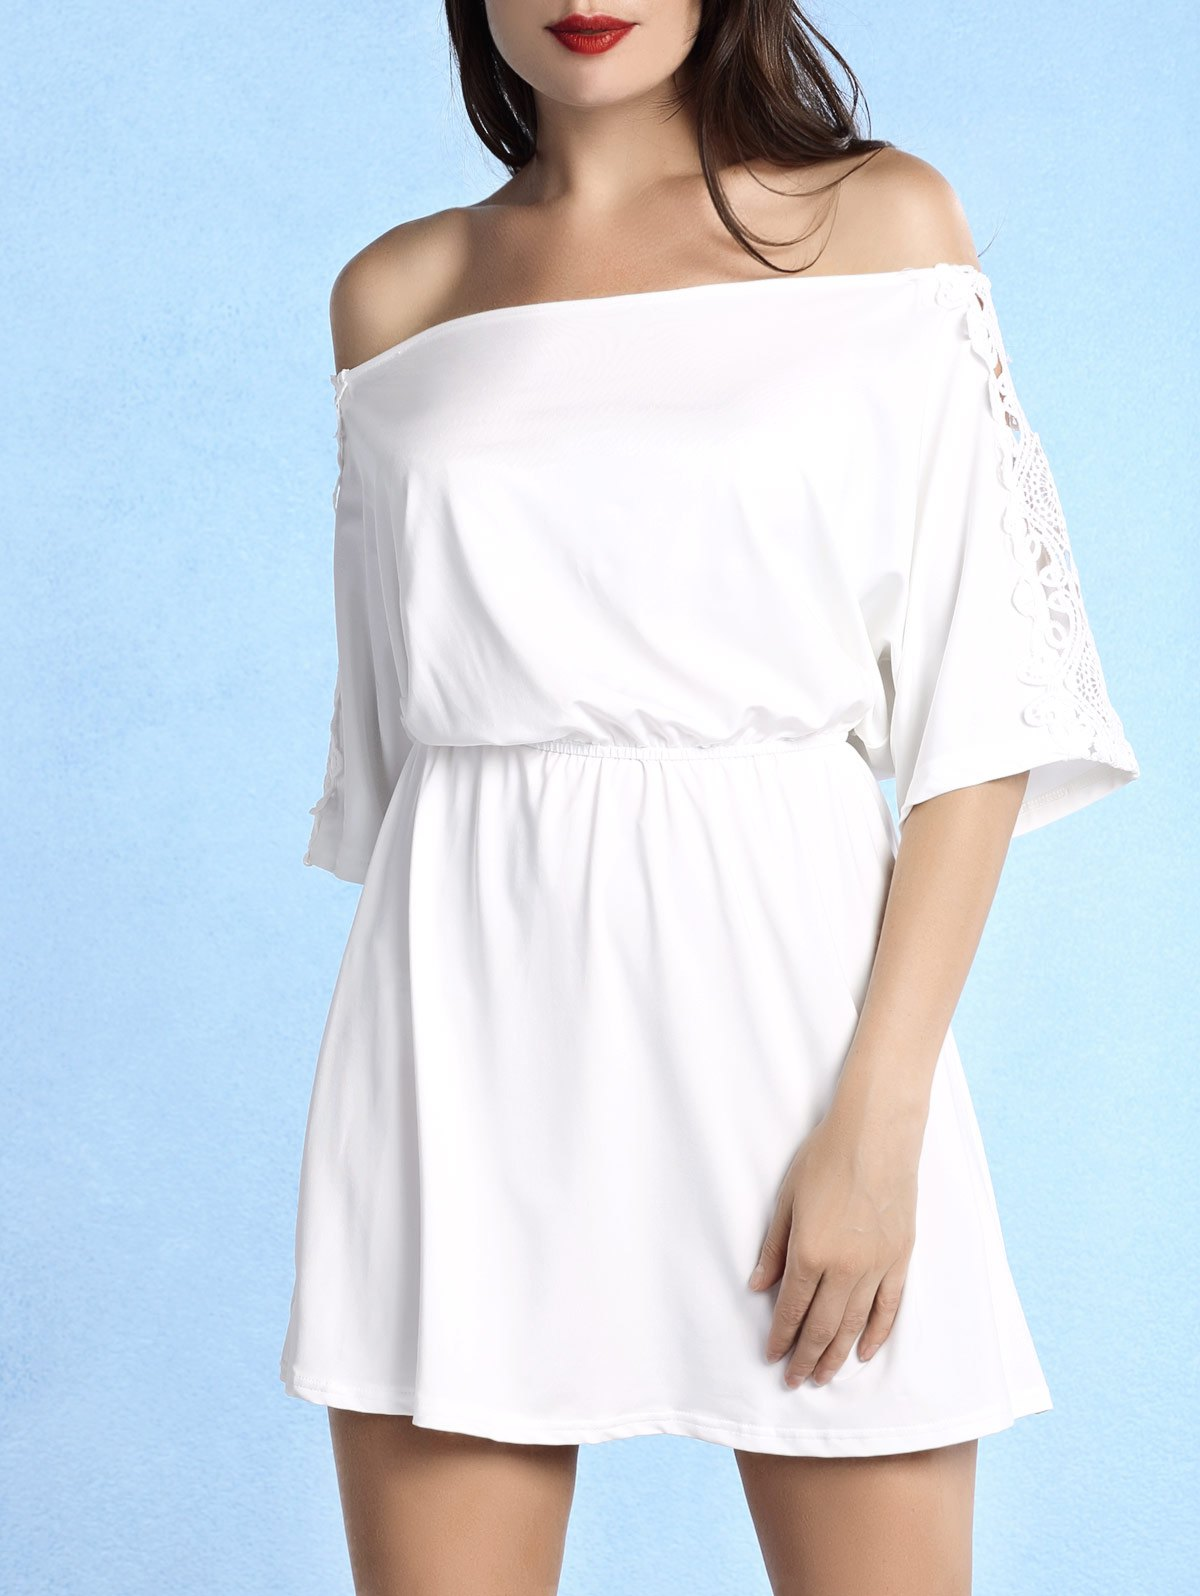 Stylish Off The Shoulder Lace Spliced Women's White Dress - WHITE M